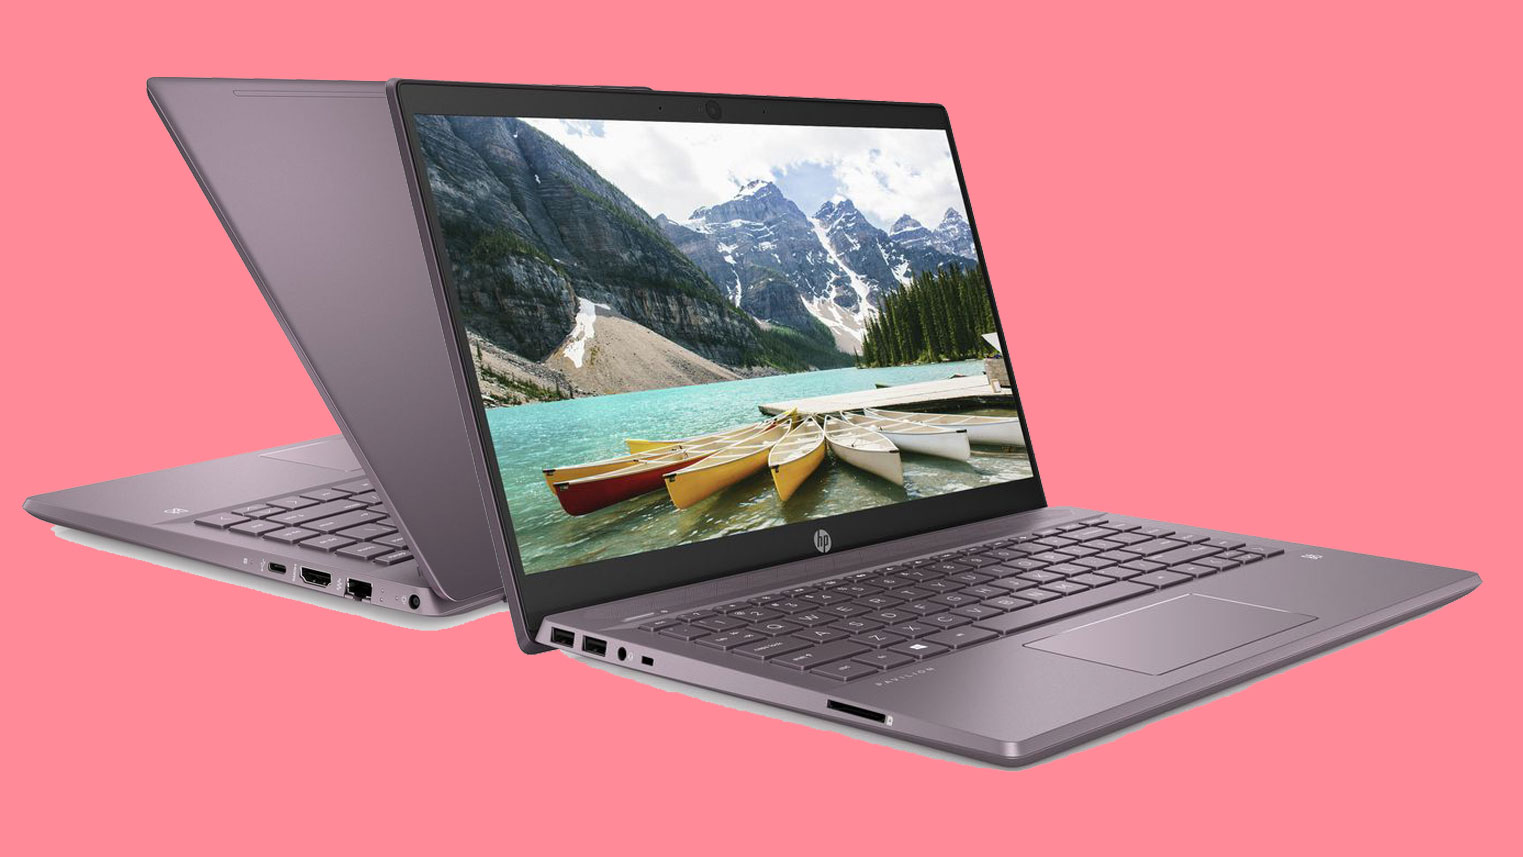 Where To Buy Hp Pavilion 14 The Best Deals On This Insanely Popular Laptop T3